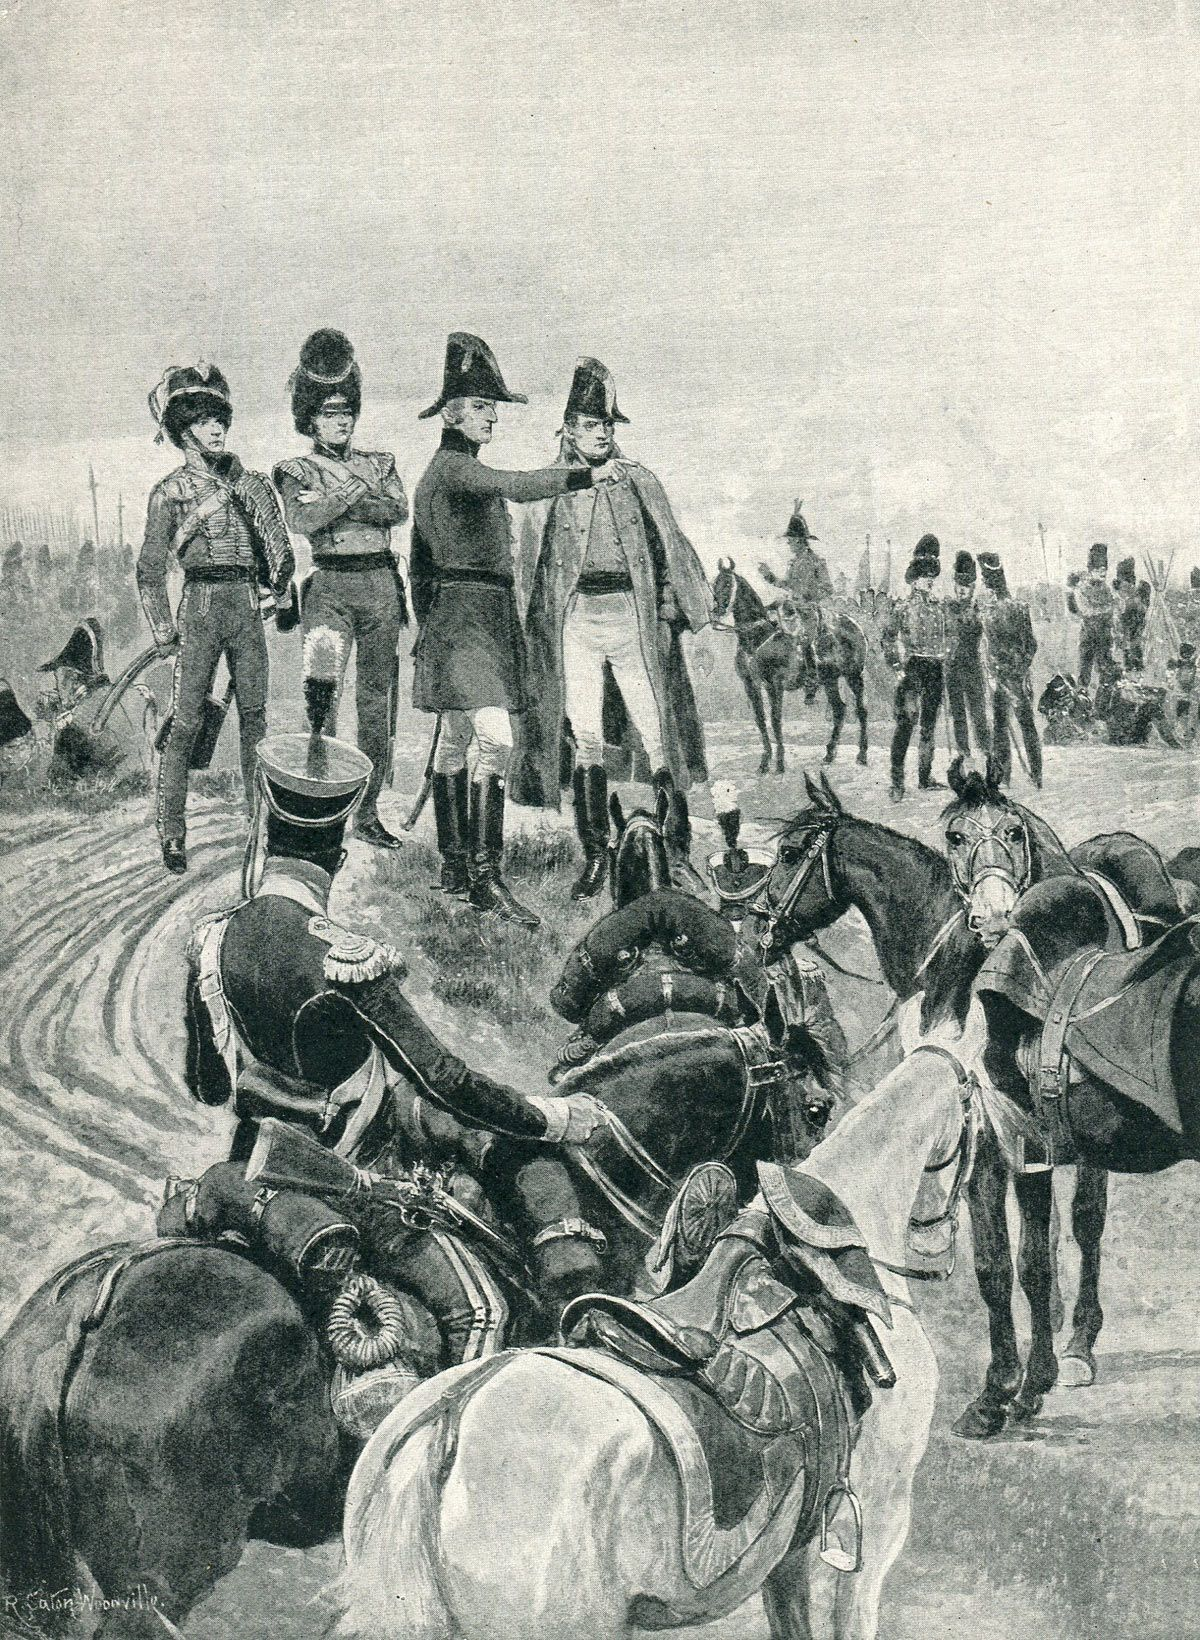 the Battle of Salamanca on 22nd July 1812 during the Peninsular War:  picture by Richard Caton Woodville